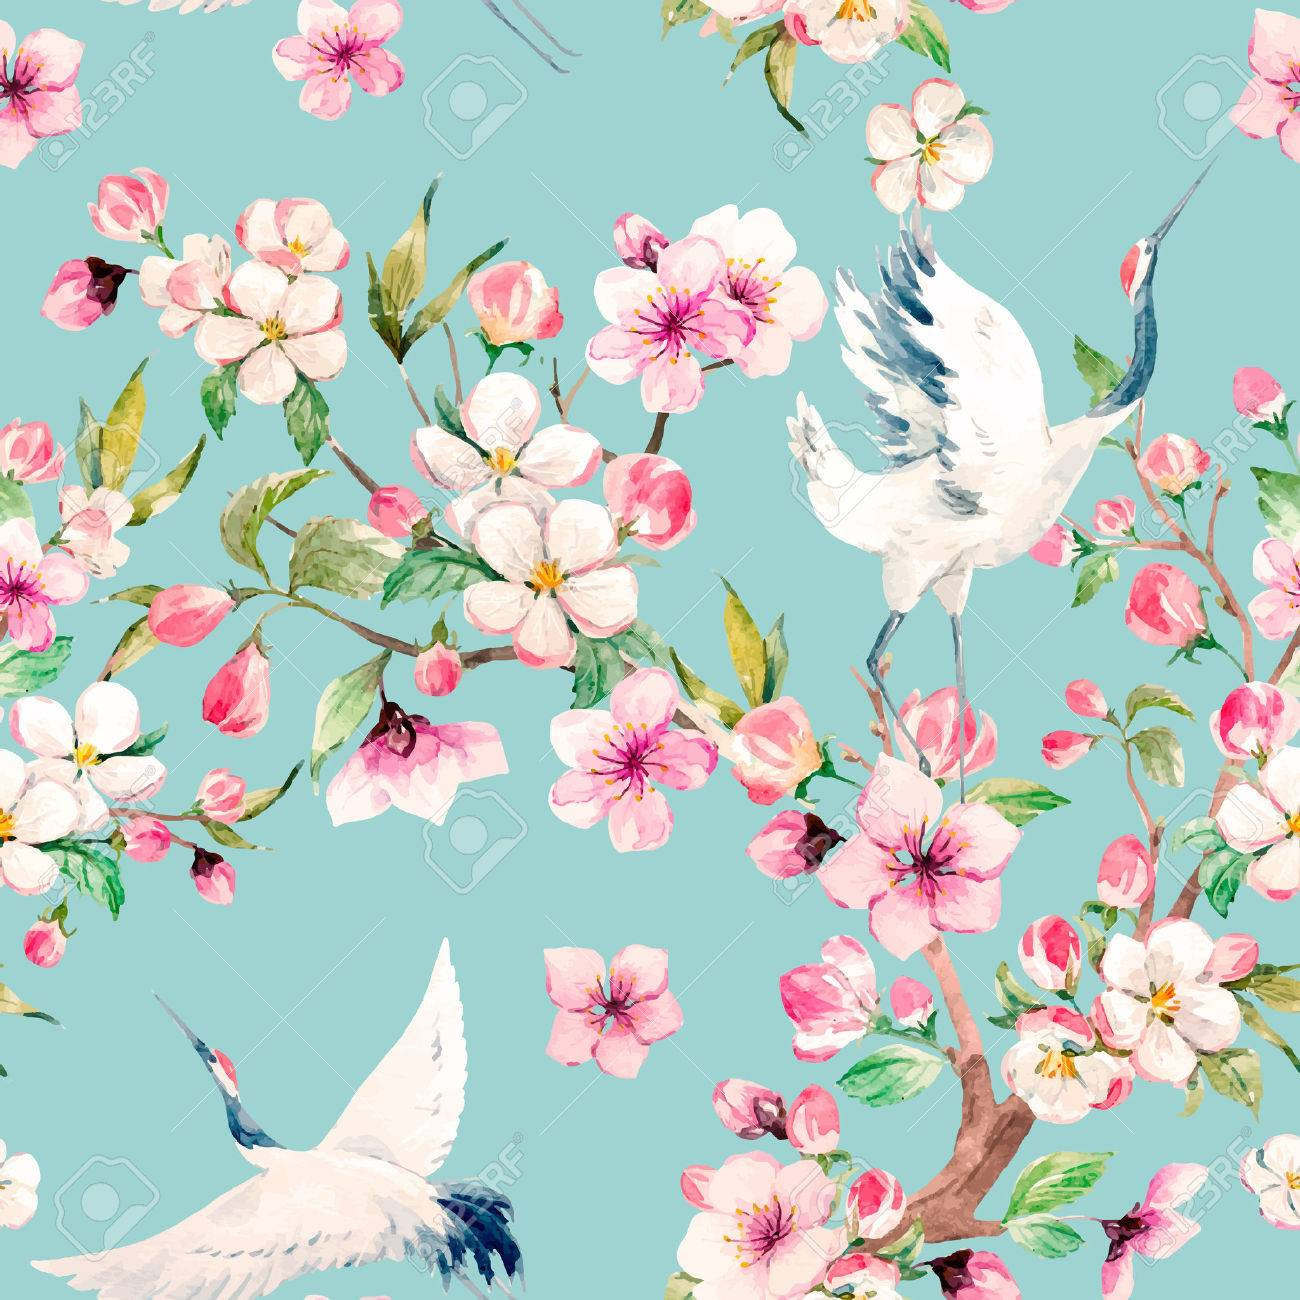 Watercolor crane with flowers vector pattern - 73712407